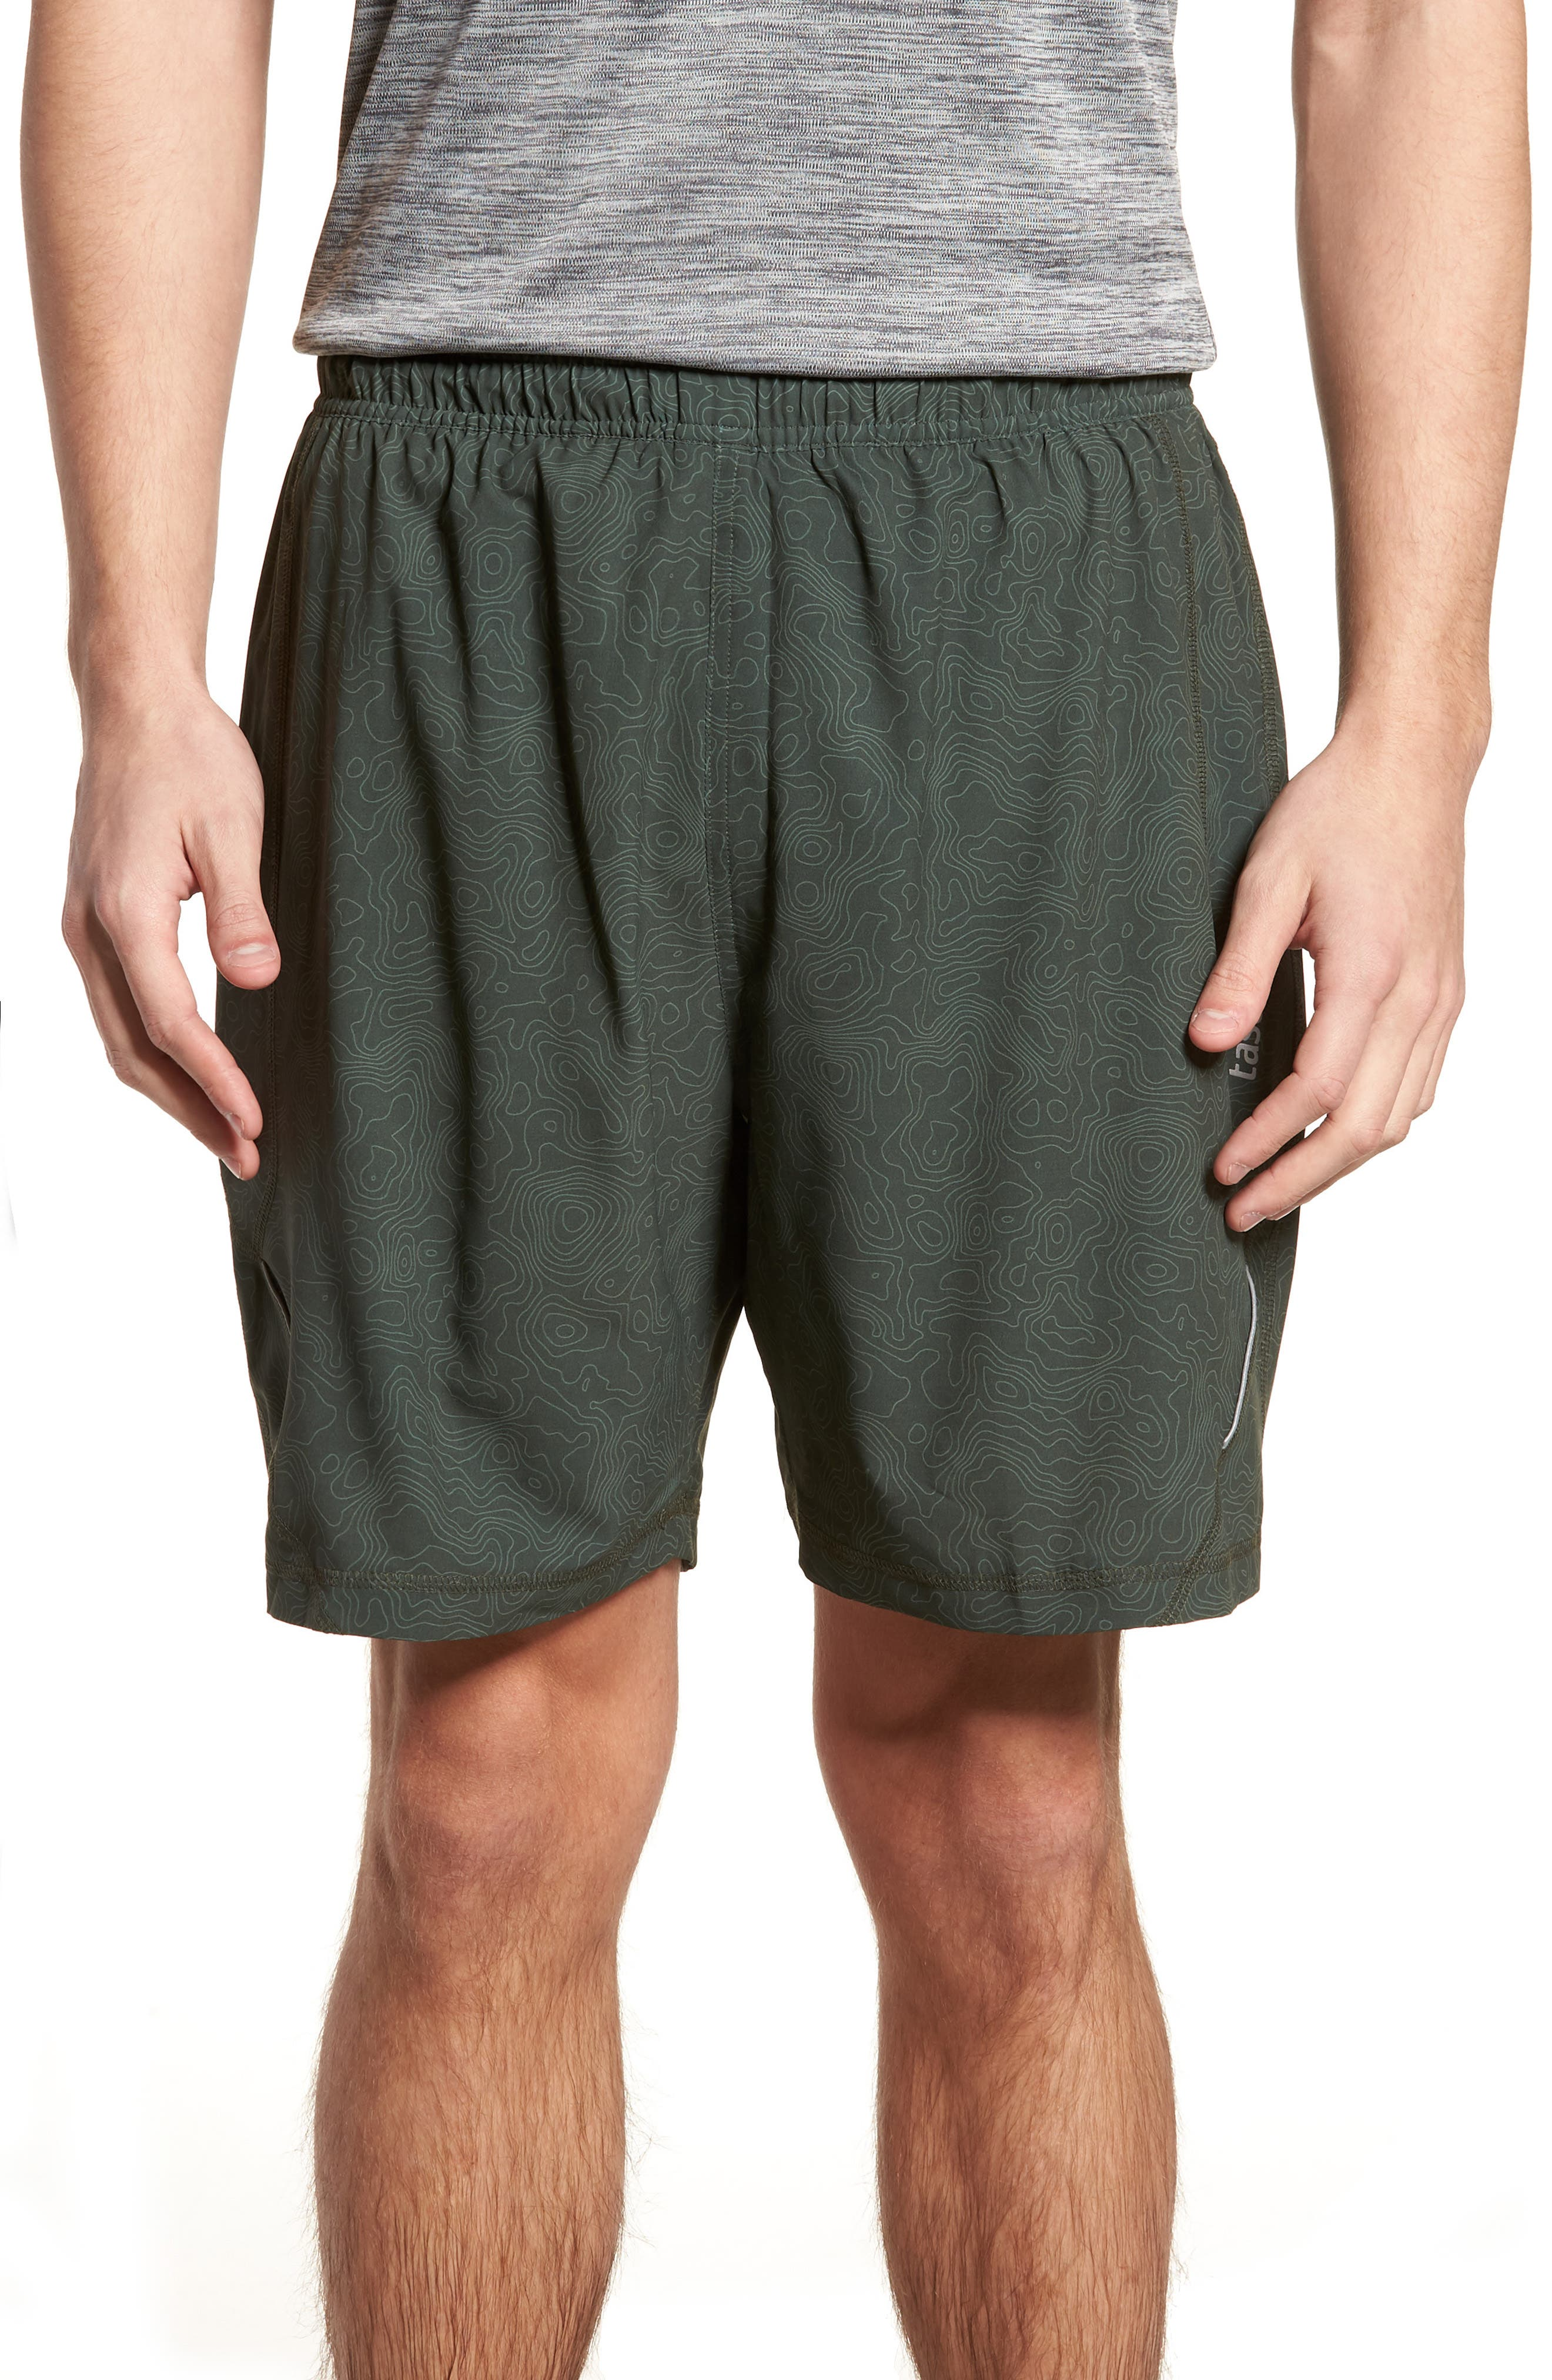 Propulsion Athletic Shorts,                             Main thumbnail 1, color,                             Topography